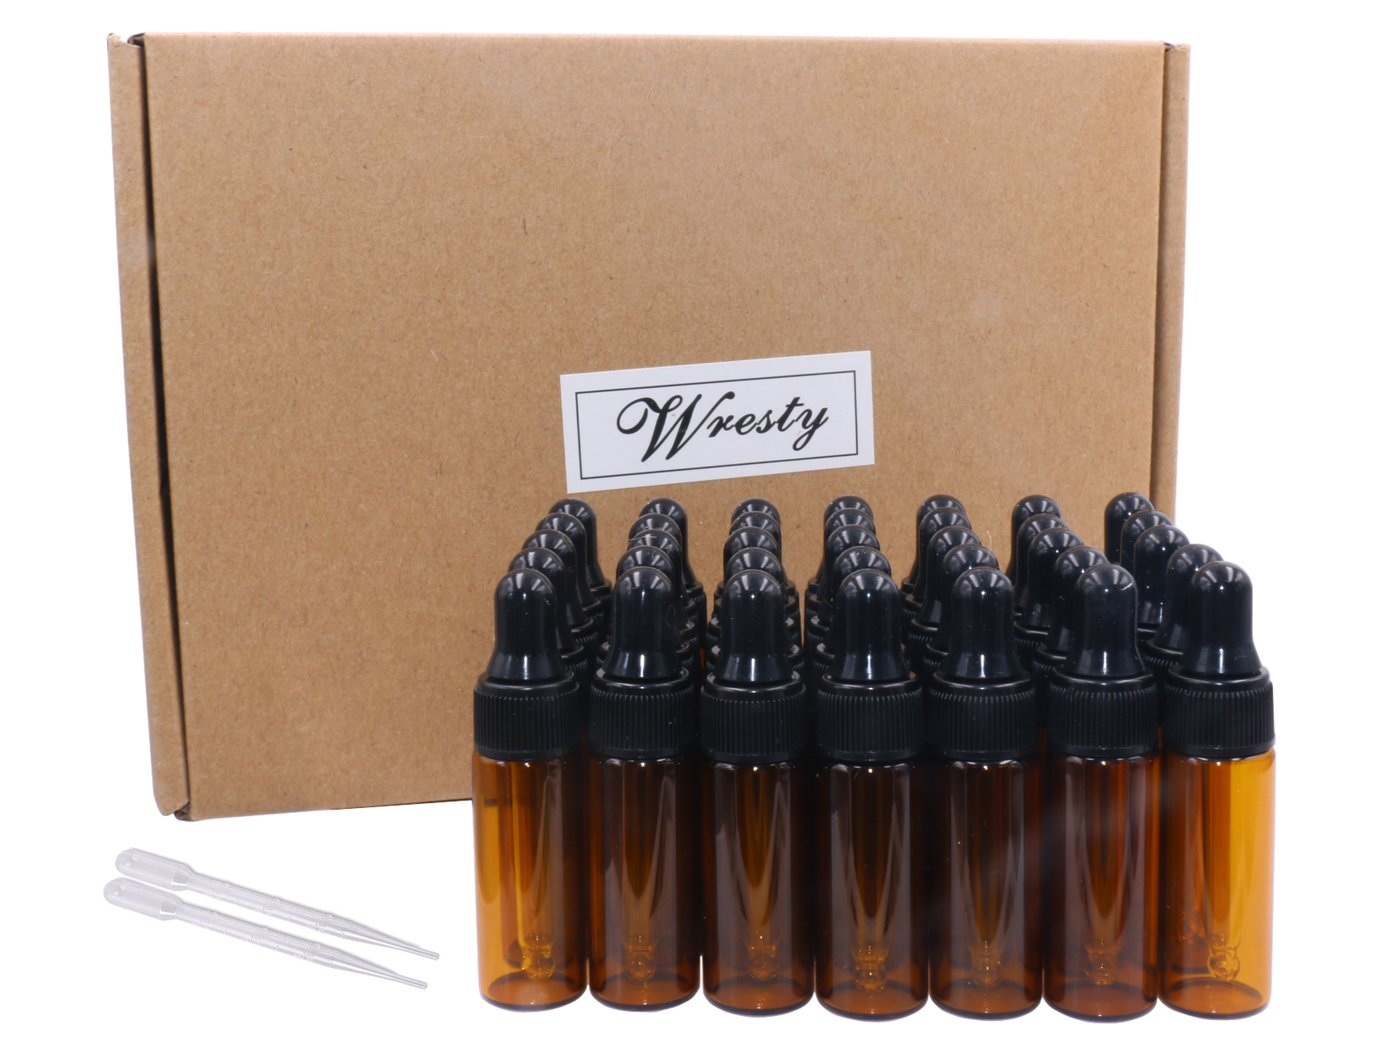 5ml Amber Glass Dropper Bottles 35 Pcs Essential Oil Bottle Perfume Liquid Sample Vials With Glass Eye Dropper, With Free Droppers Wilotick